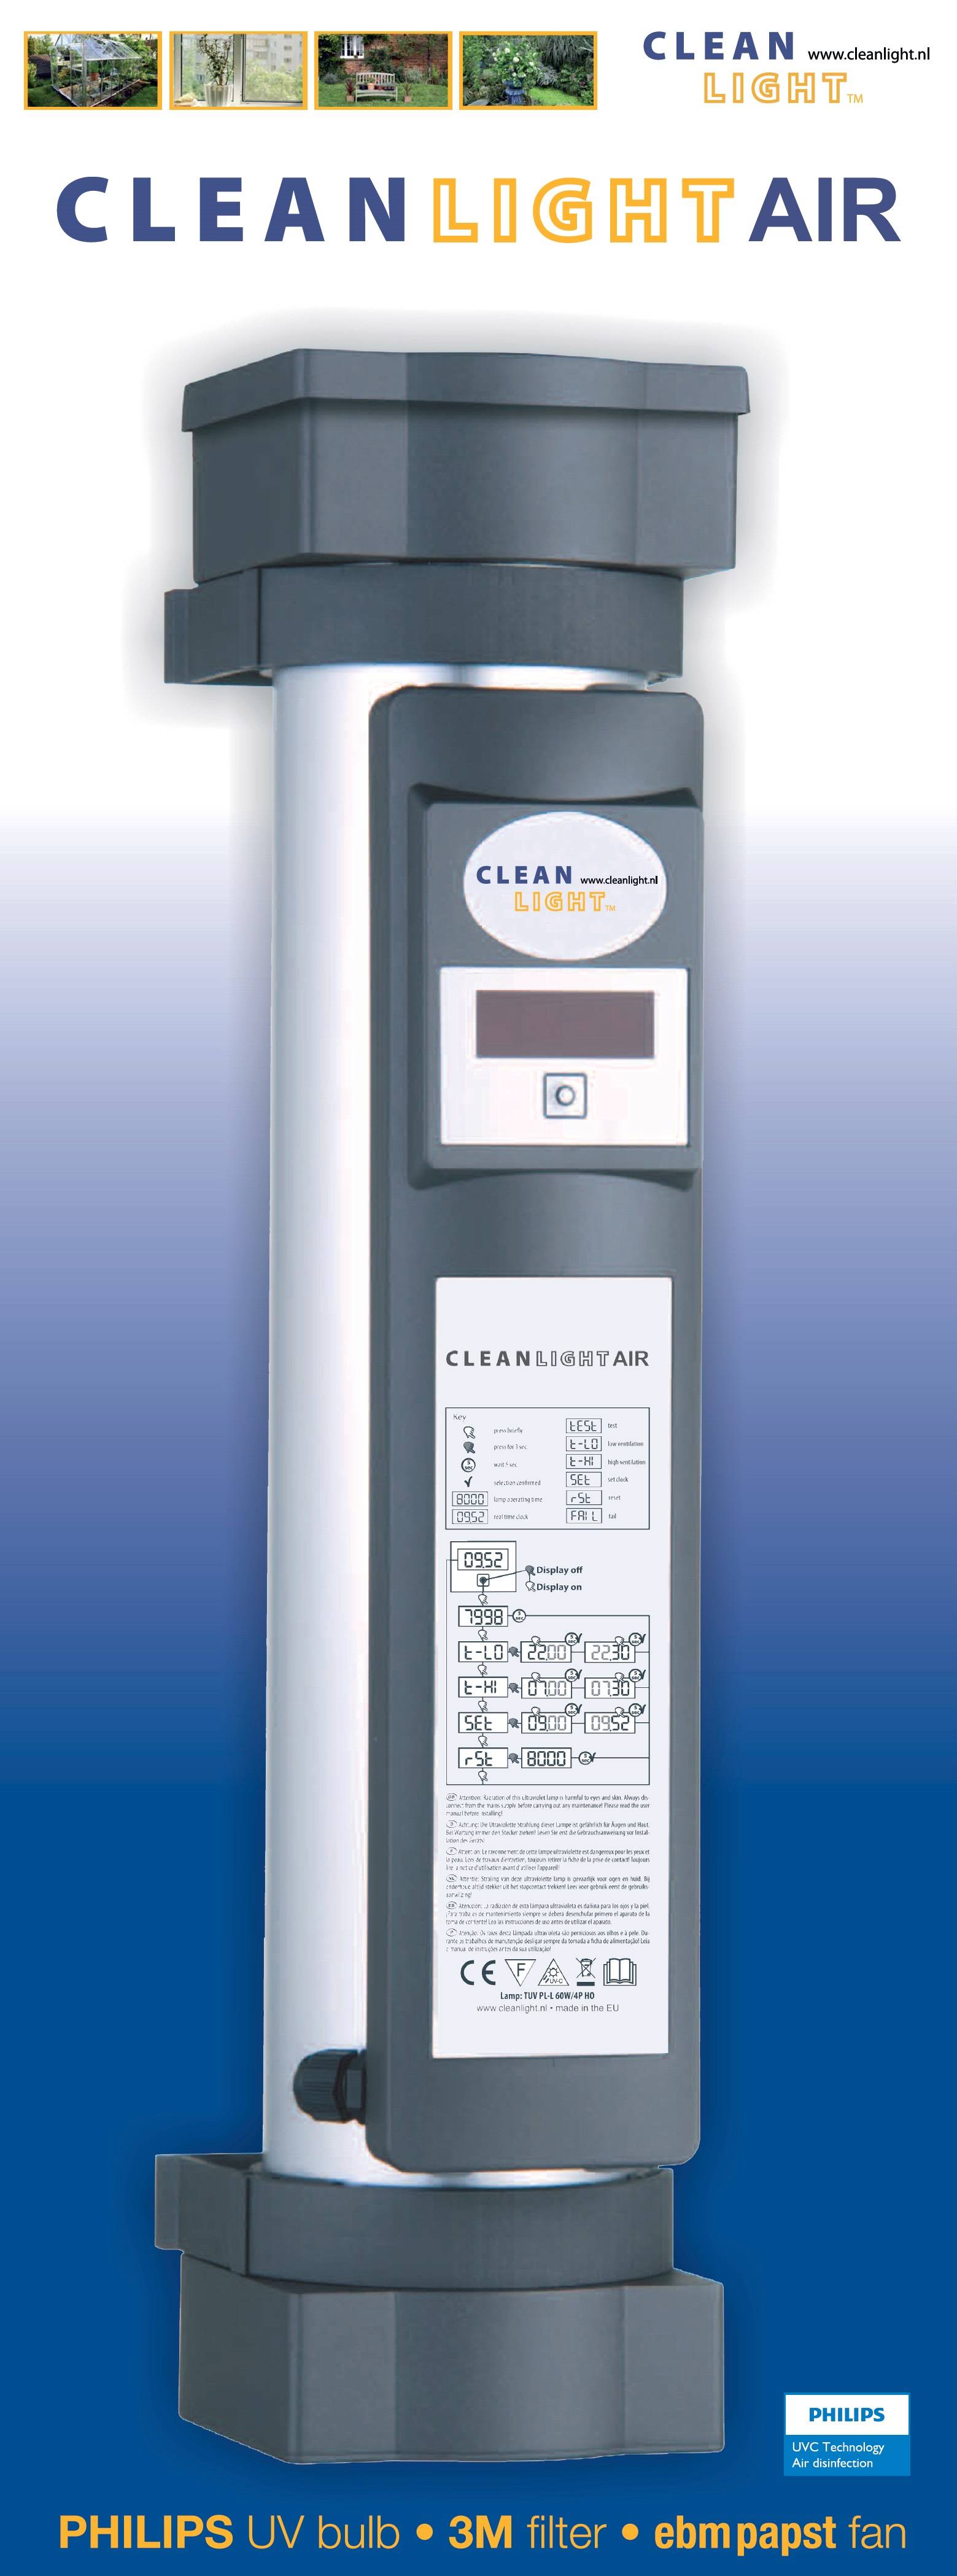 Cleanlight Air Unit Serious Seeds